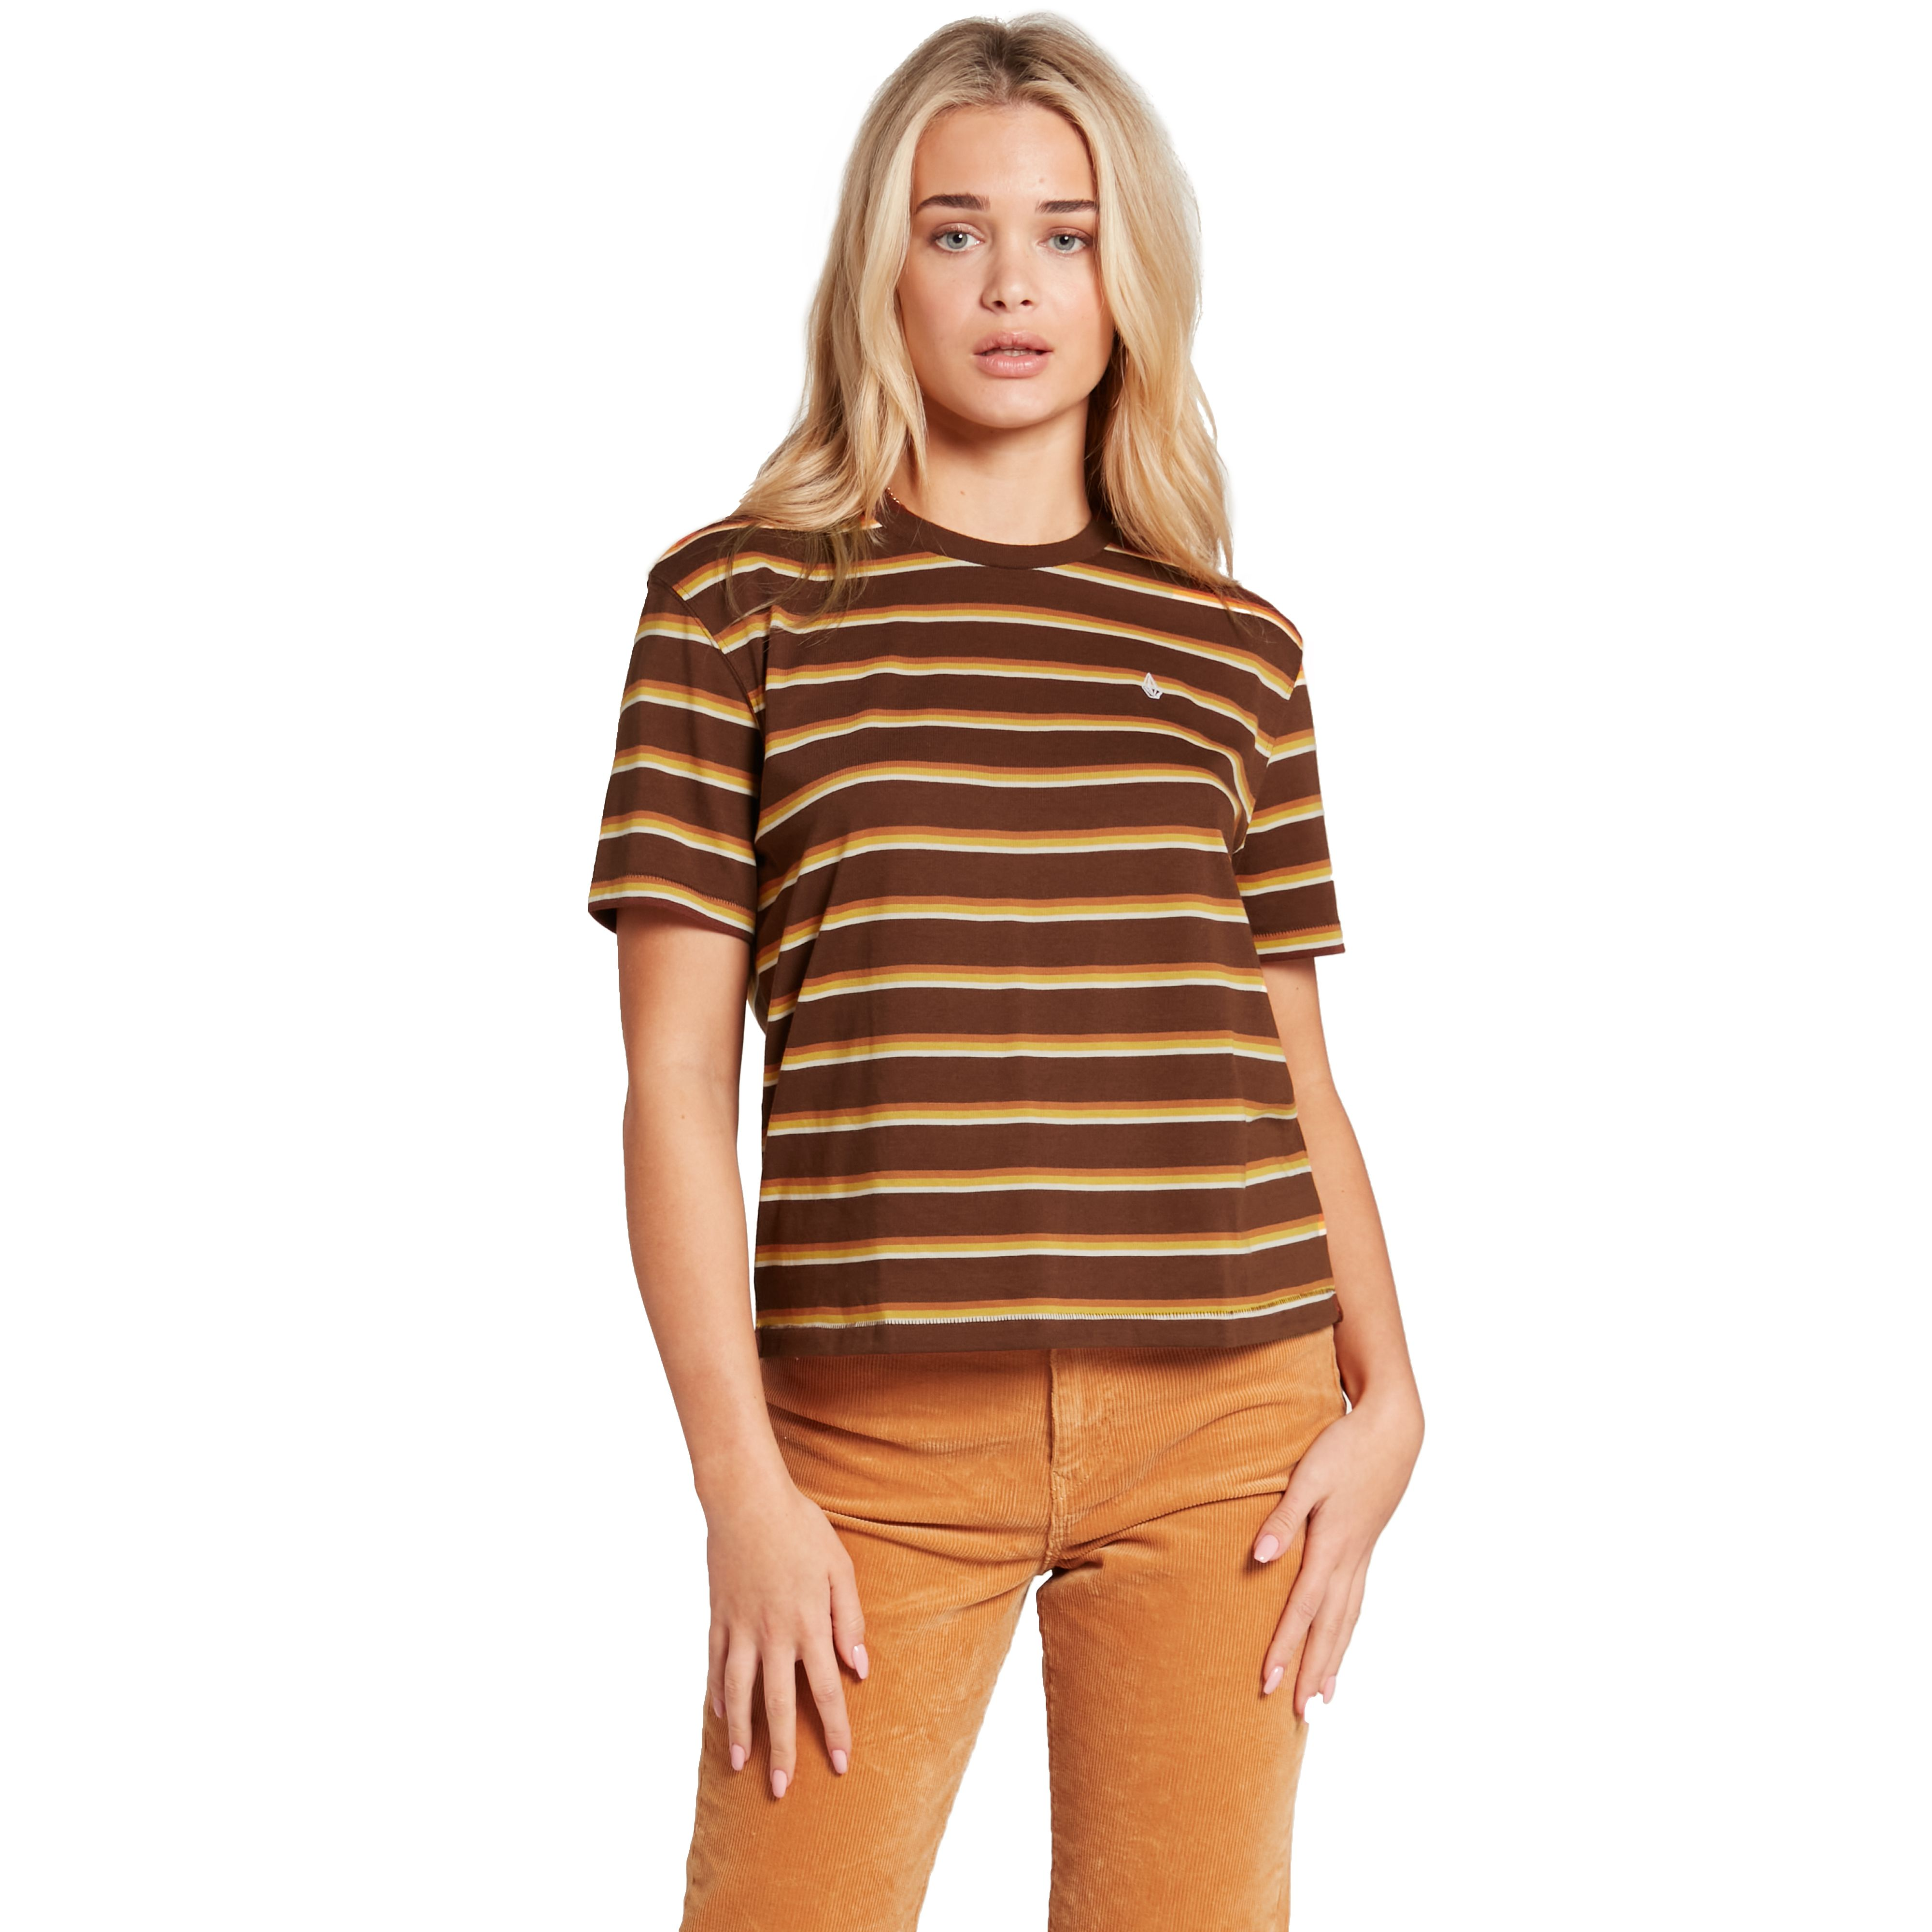 VOLCOM CHOICE IS YOURS SHORT SLEEVE T-SHIRT - BROWN